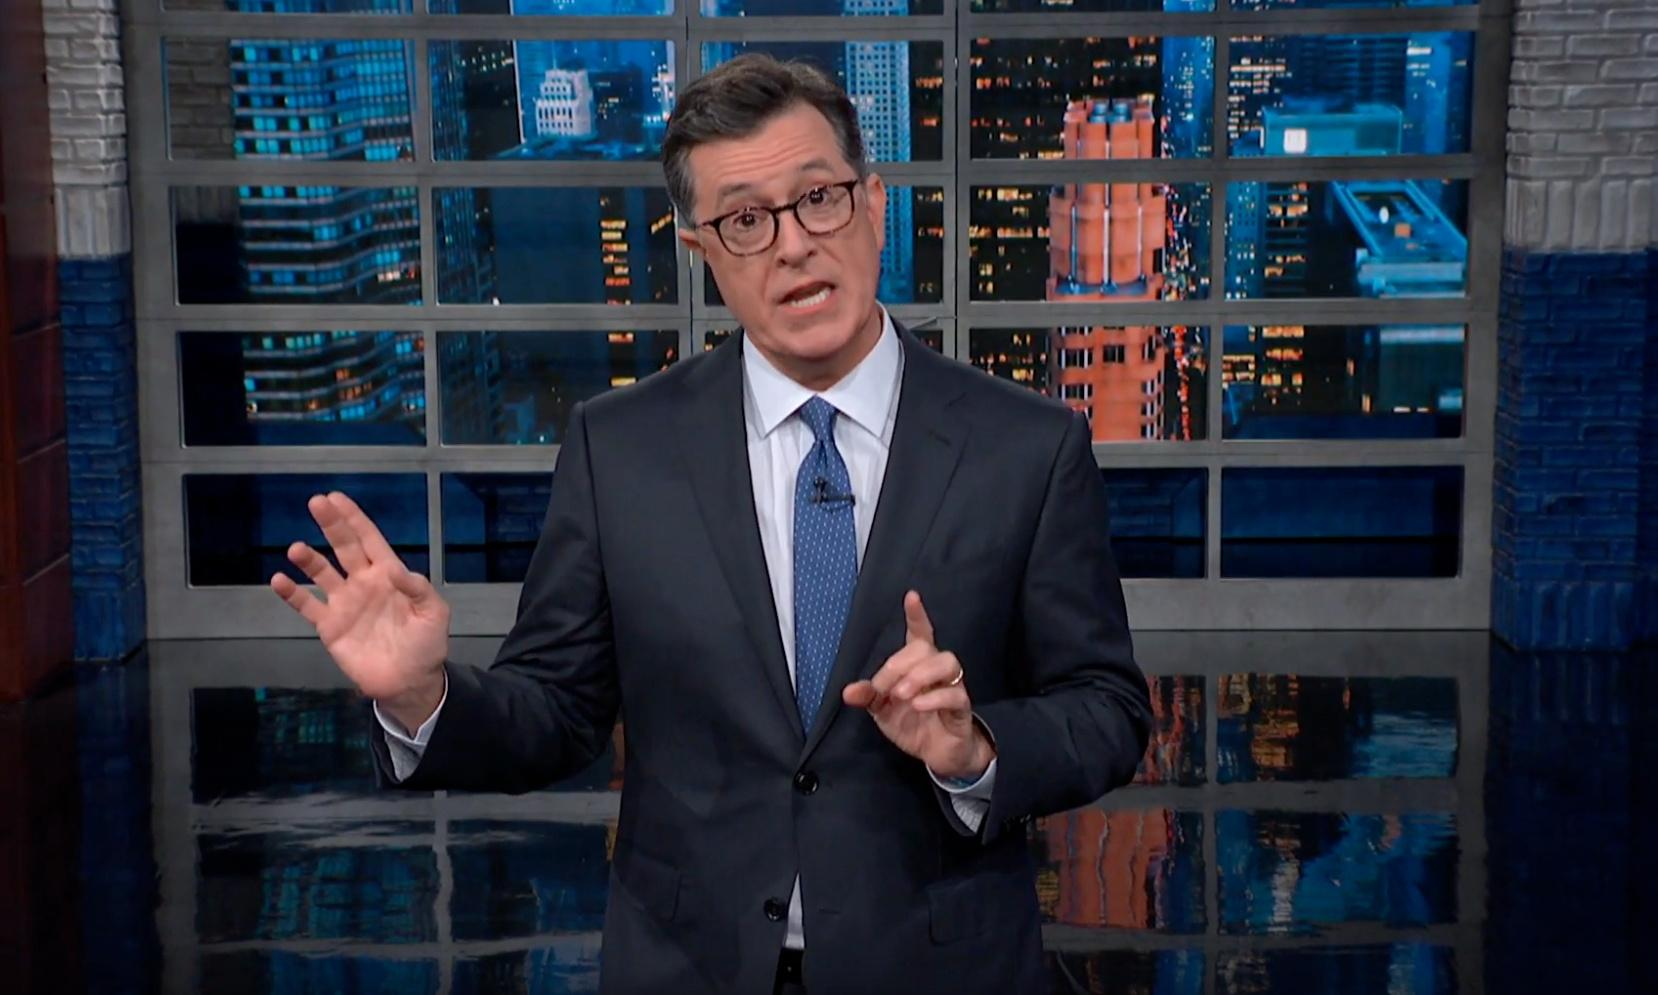 Stephen Colbert on Trump: 'A farting gnat would be a better president'